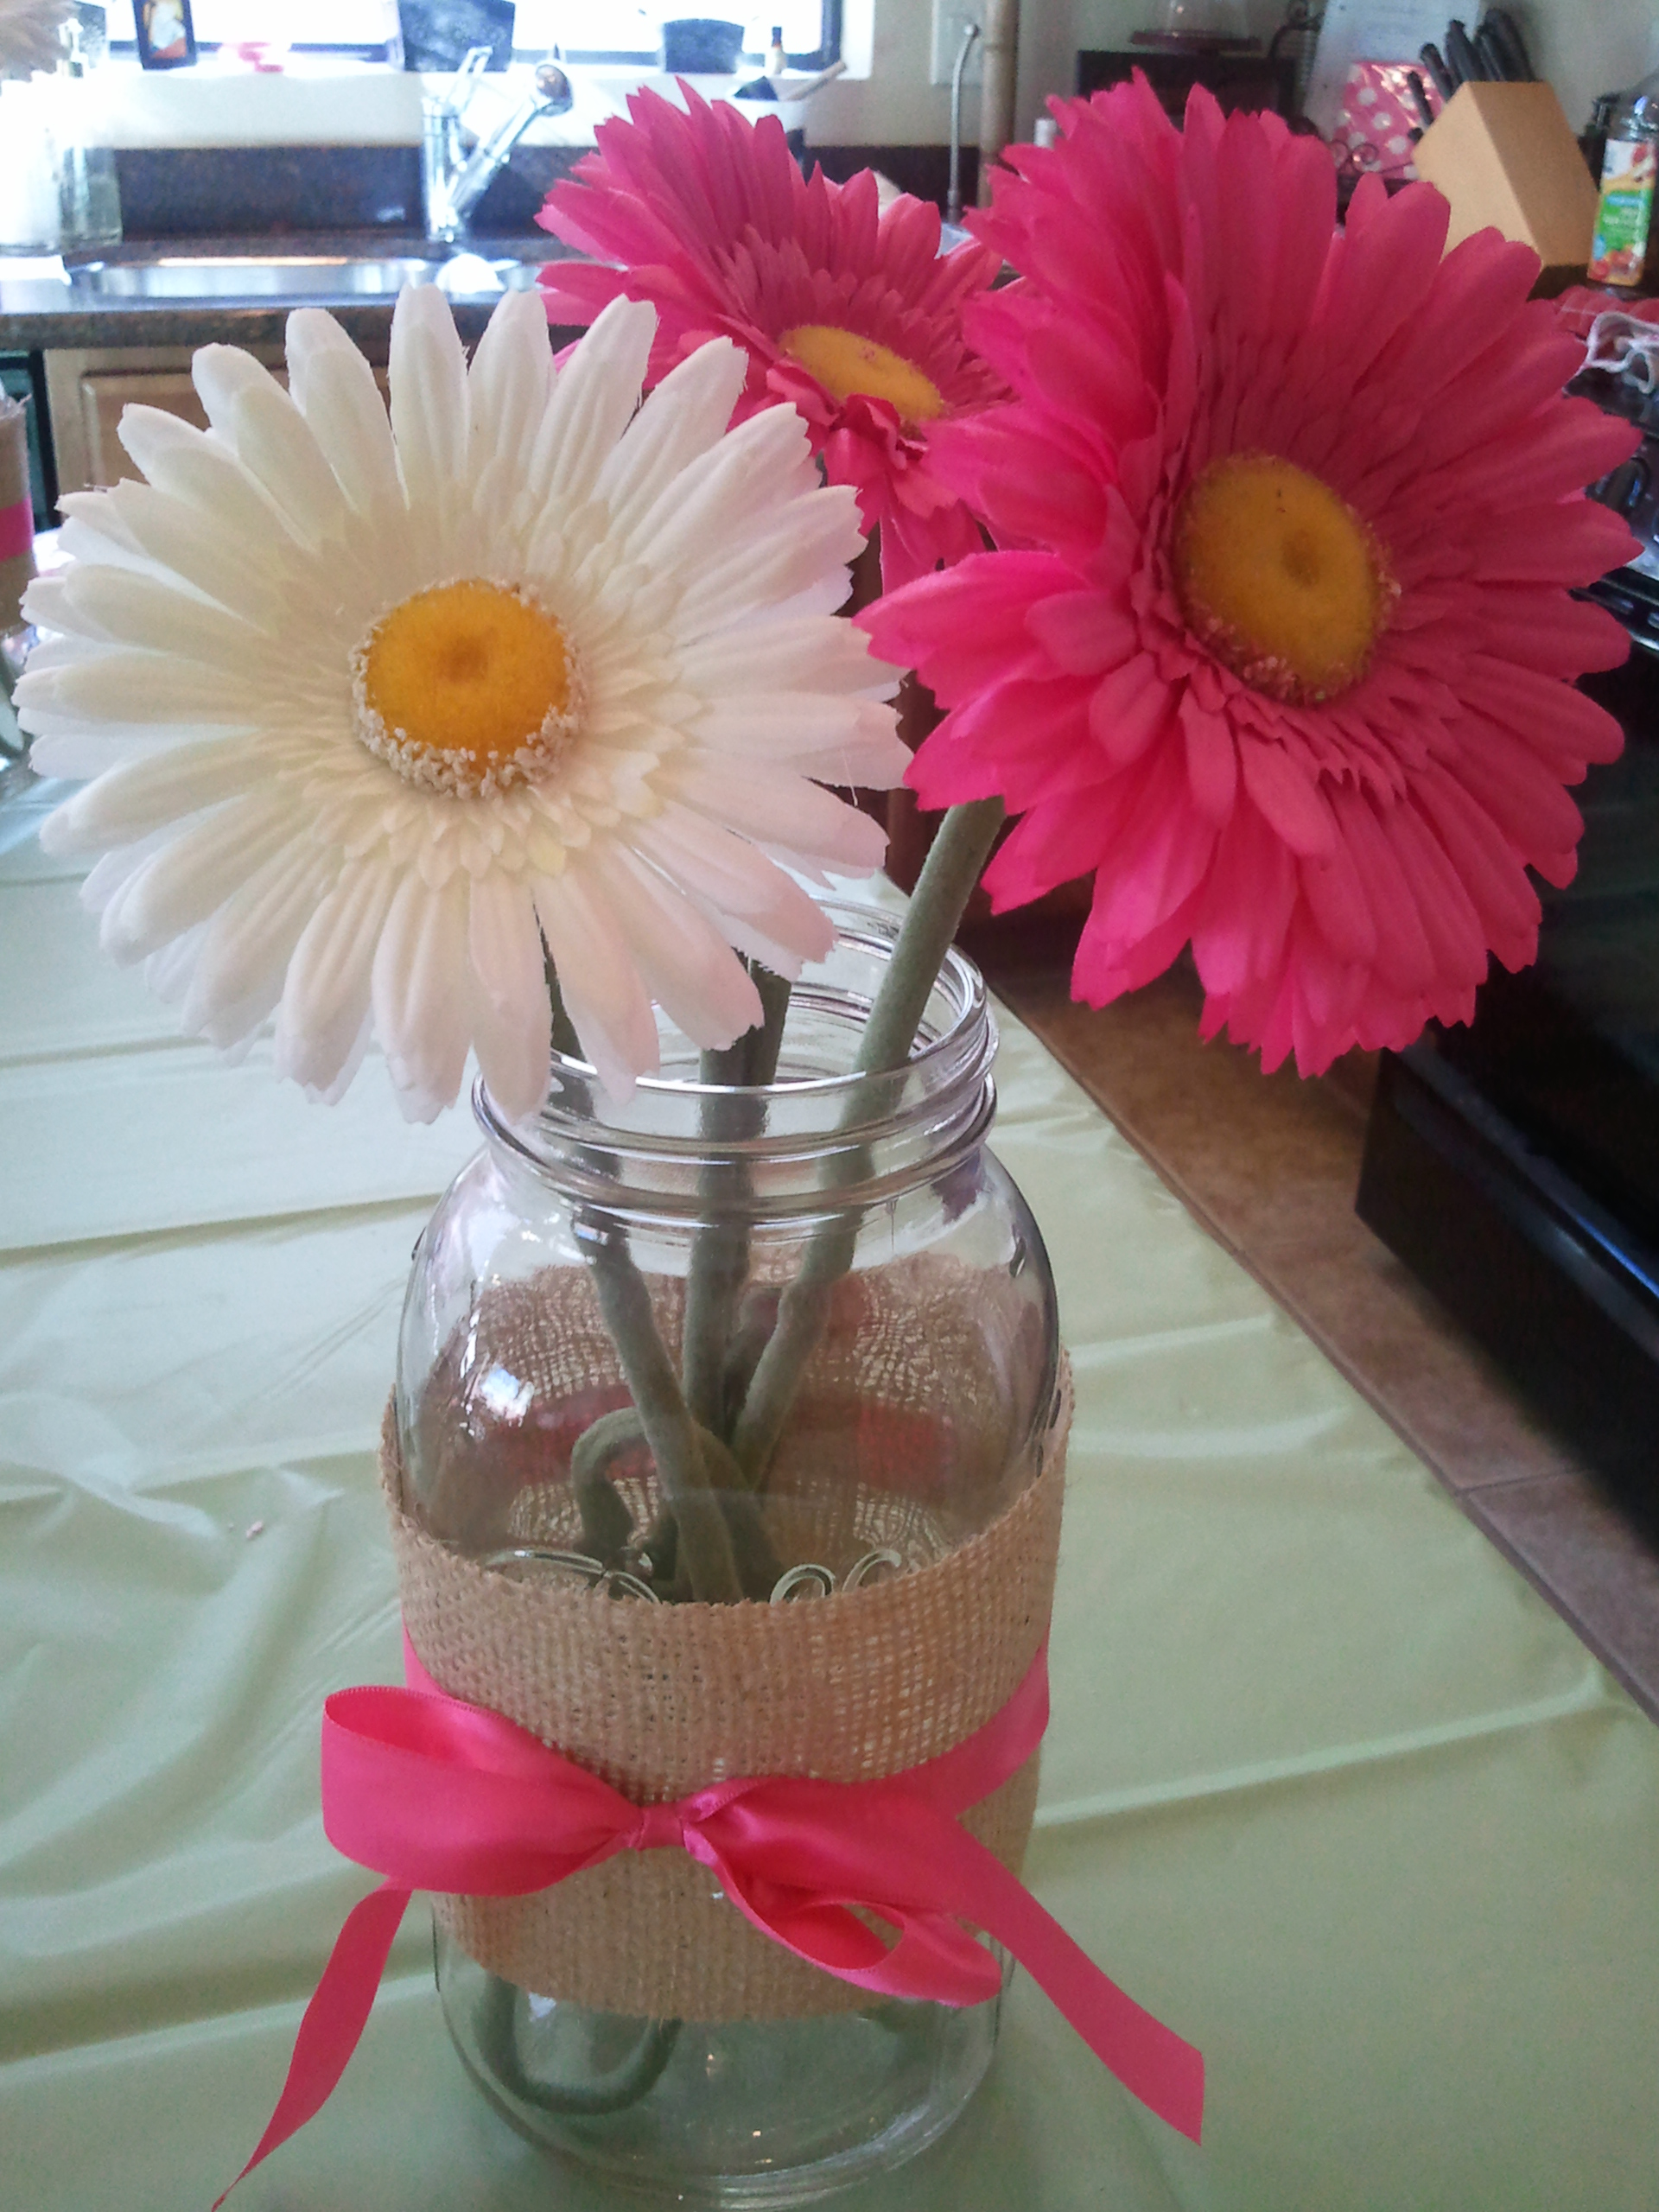 Baby shower edition part i the decor lucy jane 39 s best - Flowers for table decorations ...